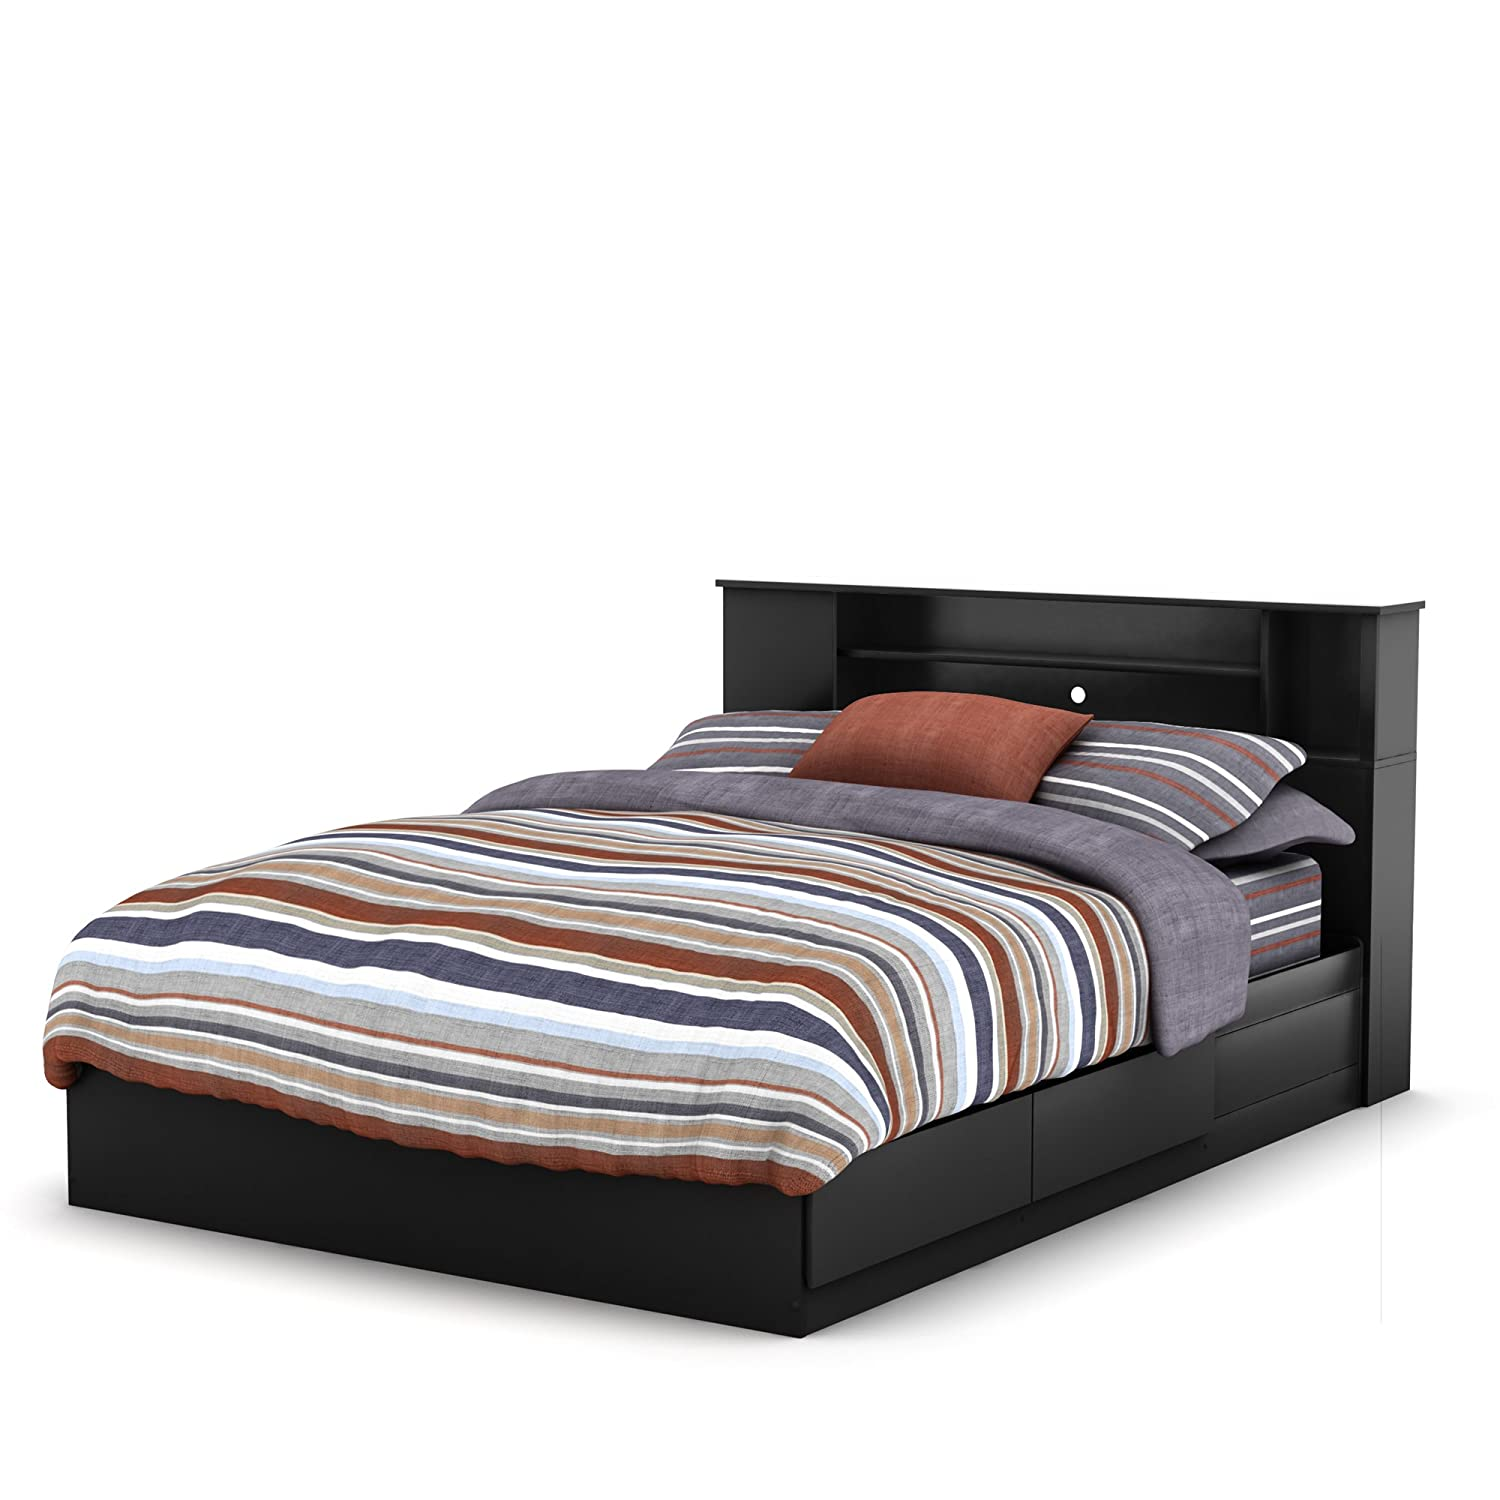 amazoncom south shore vito collection queen 60inch mates bed black kitchen u0026 dining